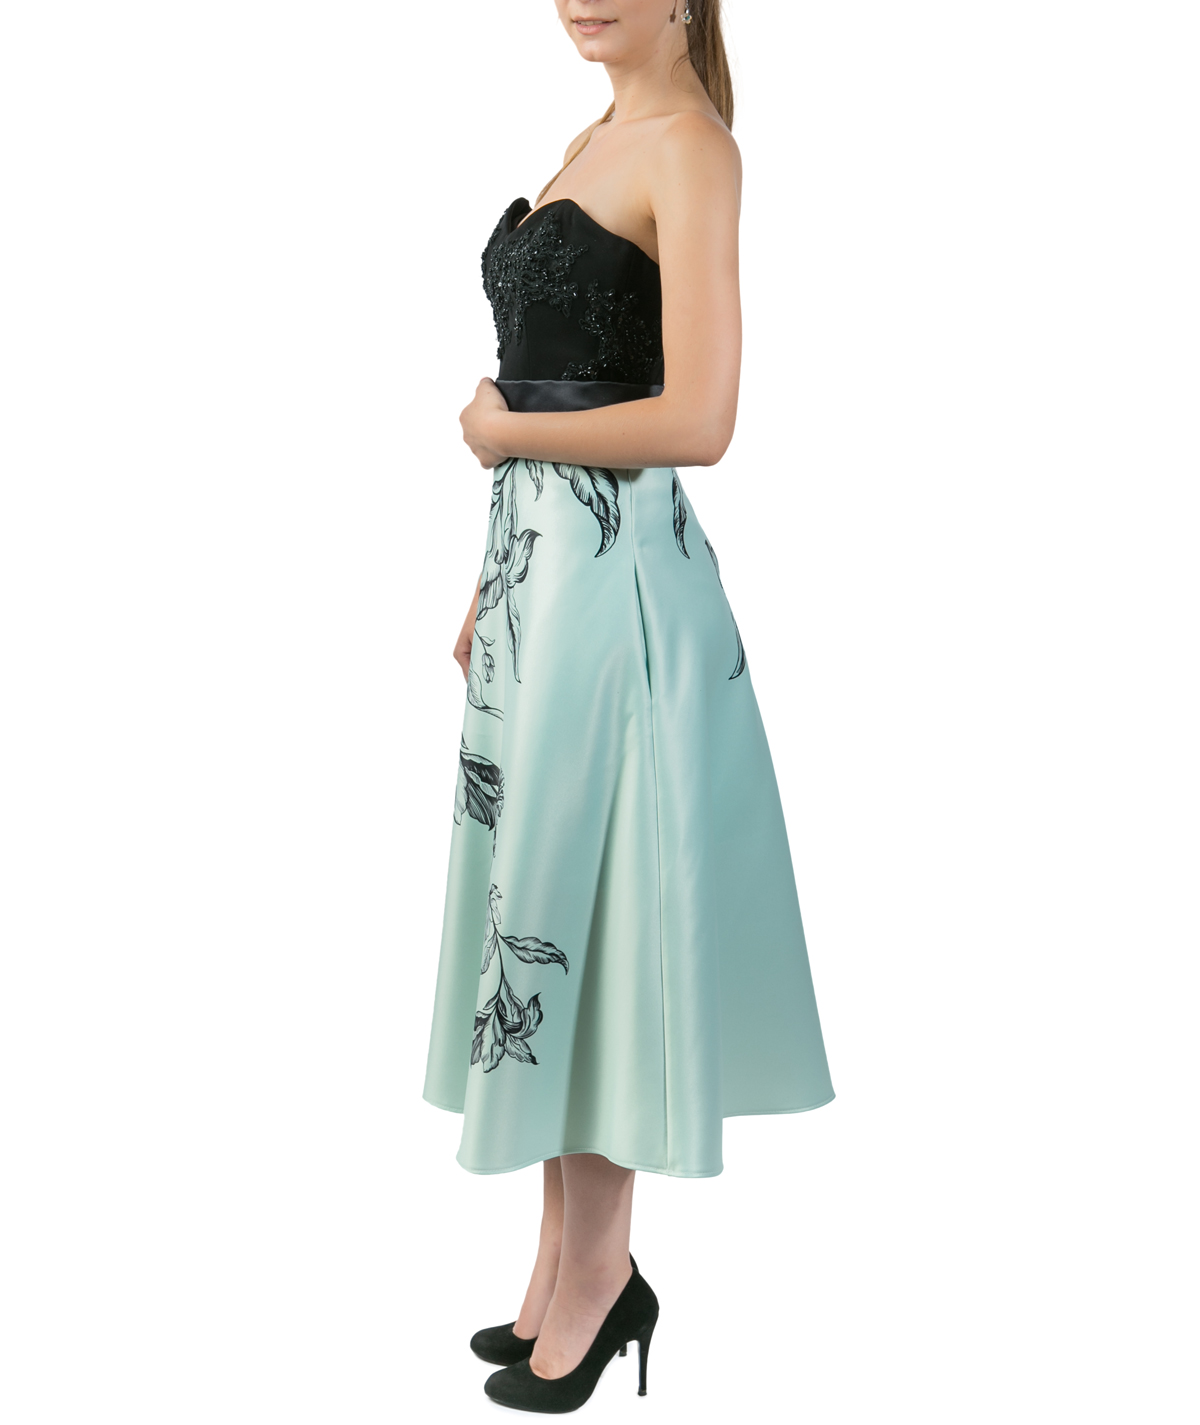 6be8d62471 Green Floral Midi Skirt – DACC